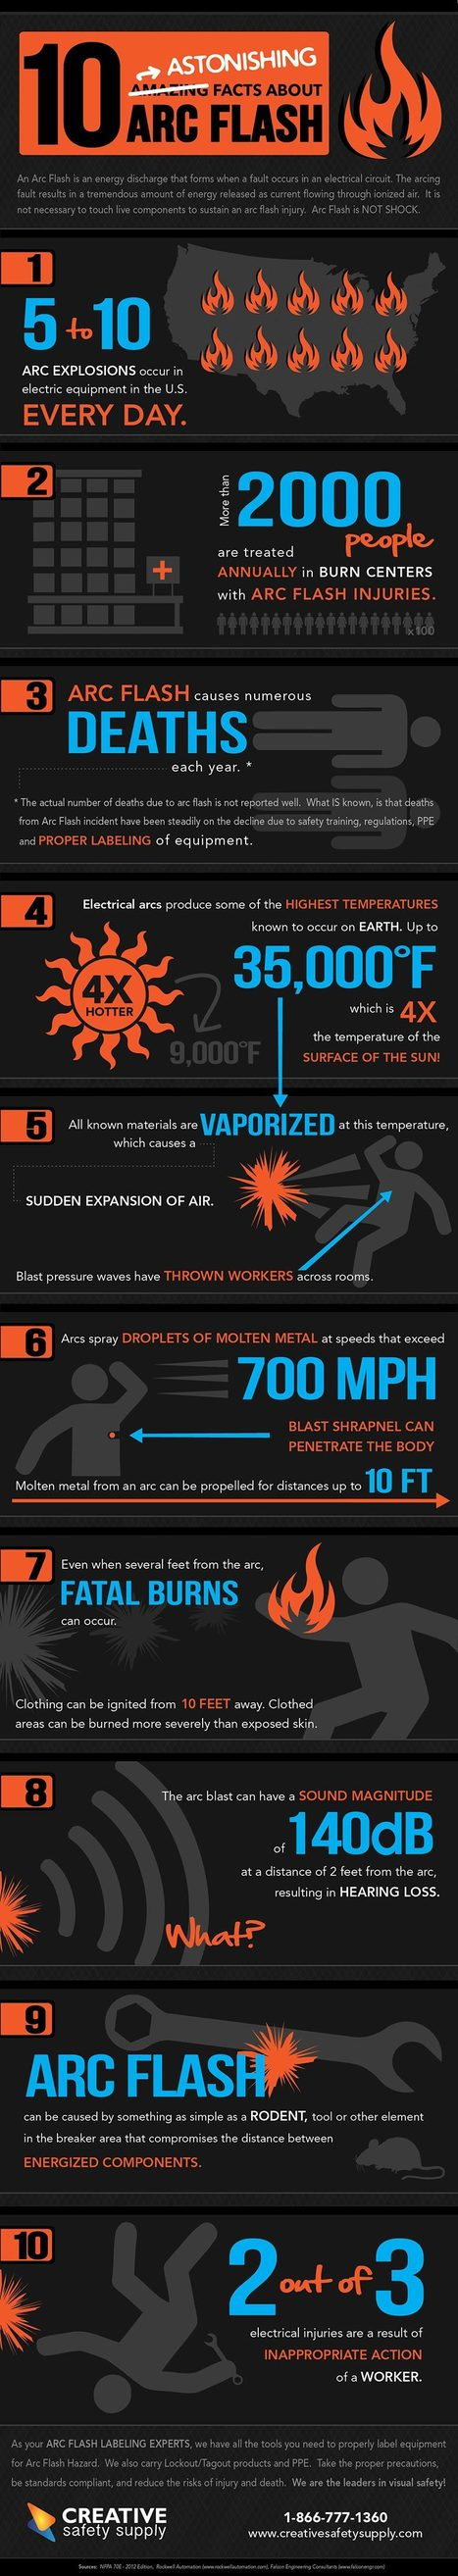 Top 10 Astonishing Facts about Arc Flash | All Infographics | Scoop.it